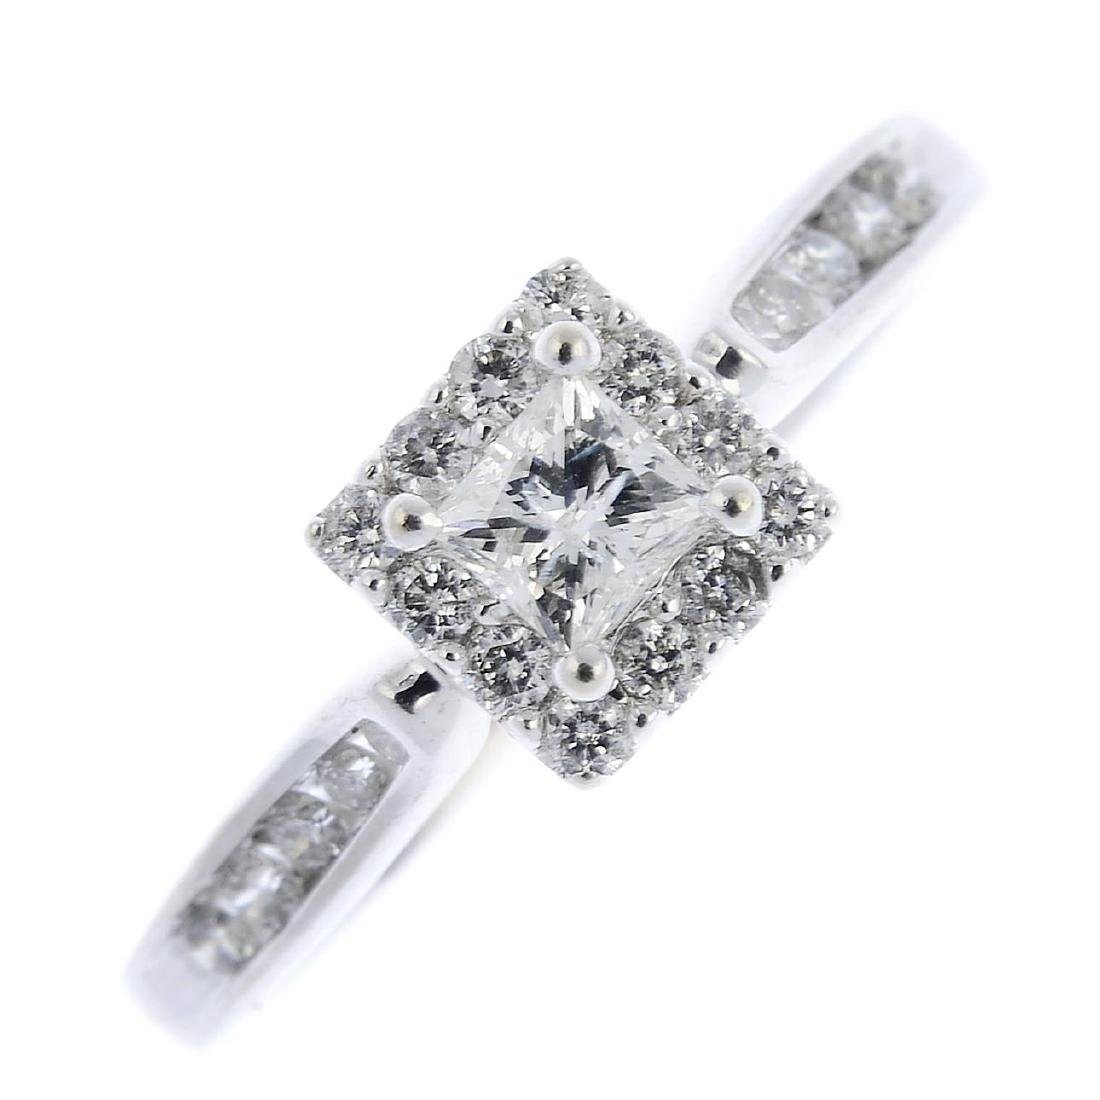 A diamond cluster ring. The square-shape diamond, with